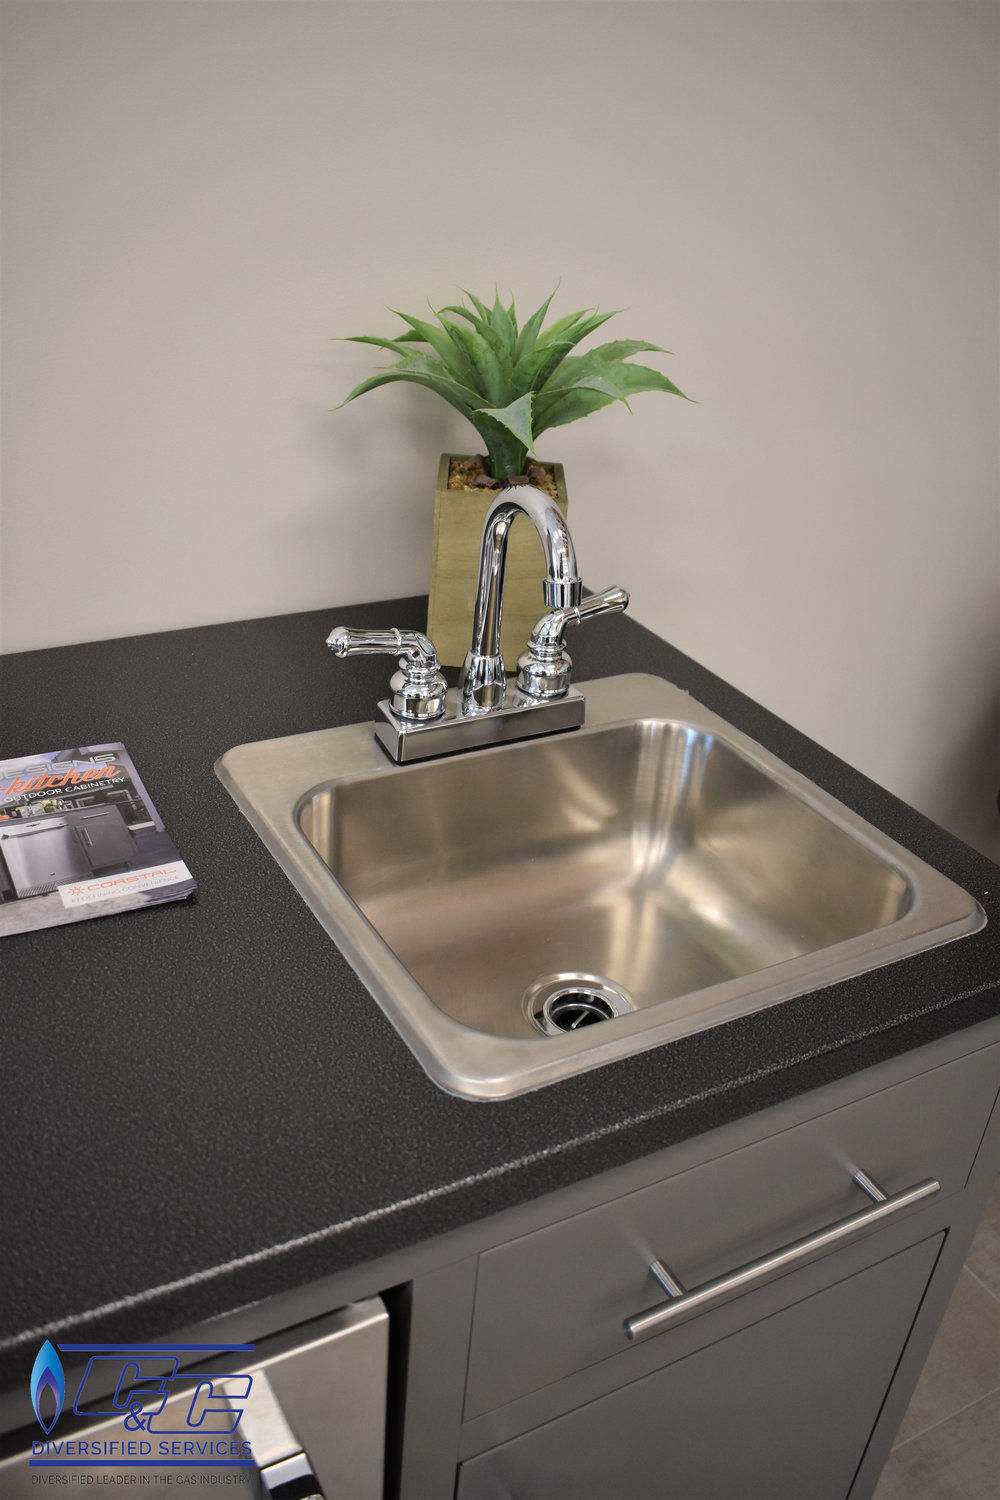 Challenger Designs & Kitchen Sink / Faucet Options